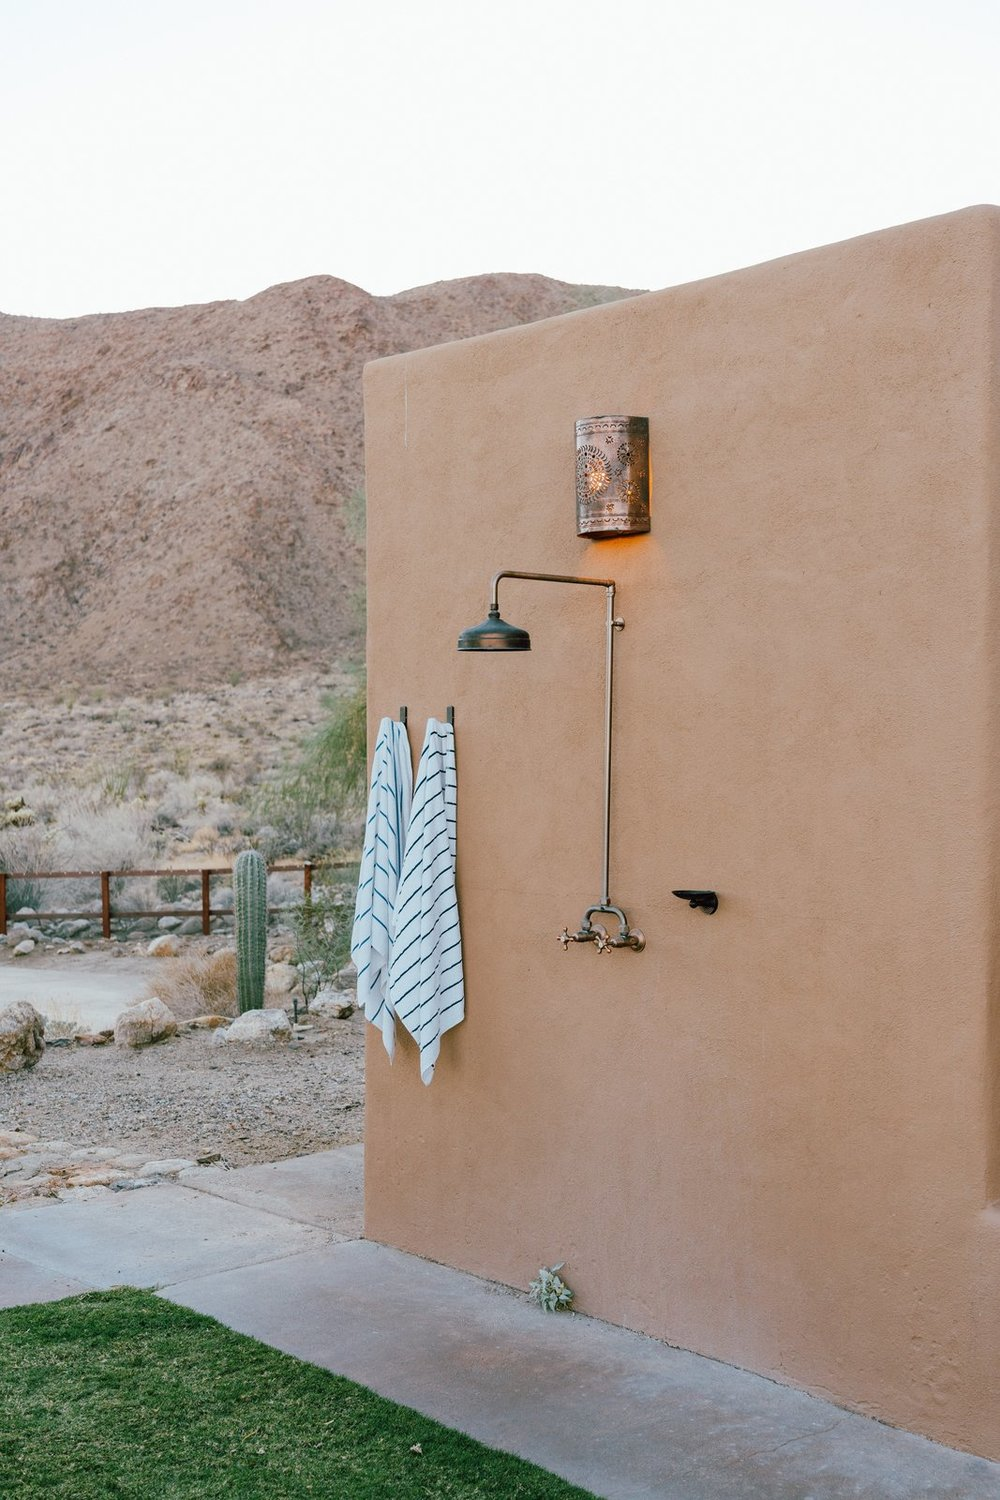 An outdoor shower welcomes Young home after a day out in the dunes. (Tim Melideo)